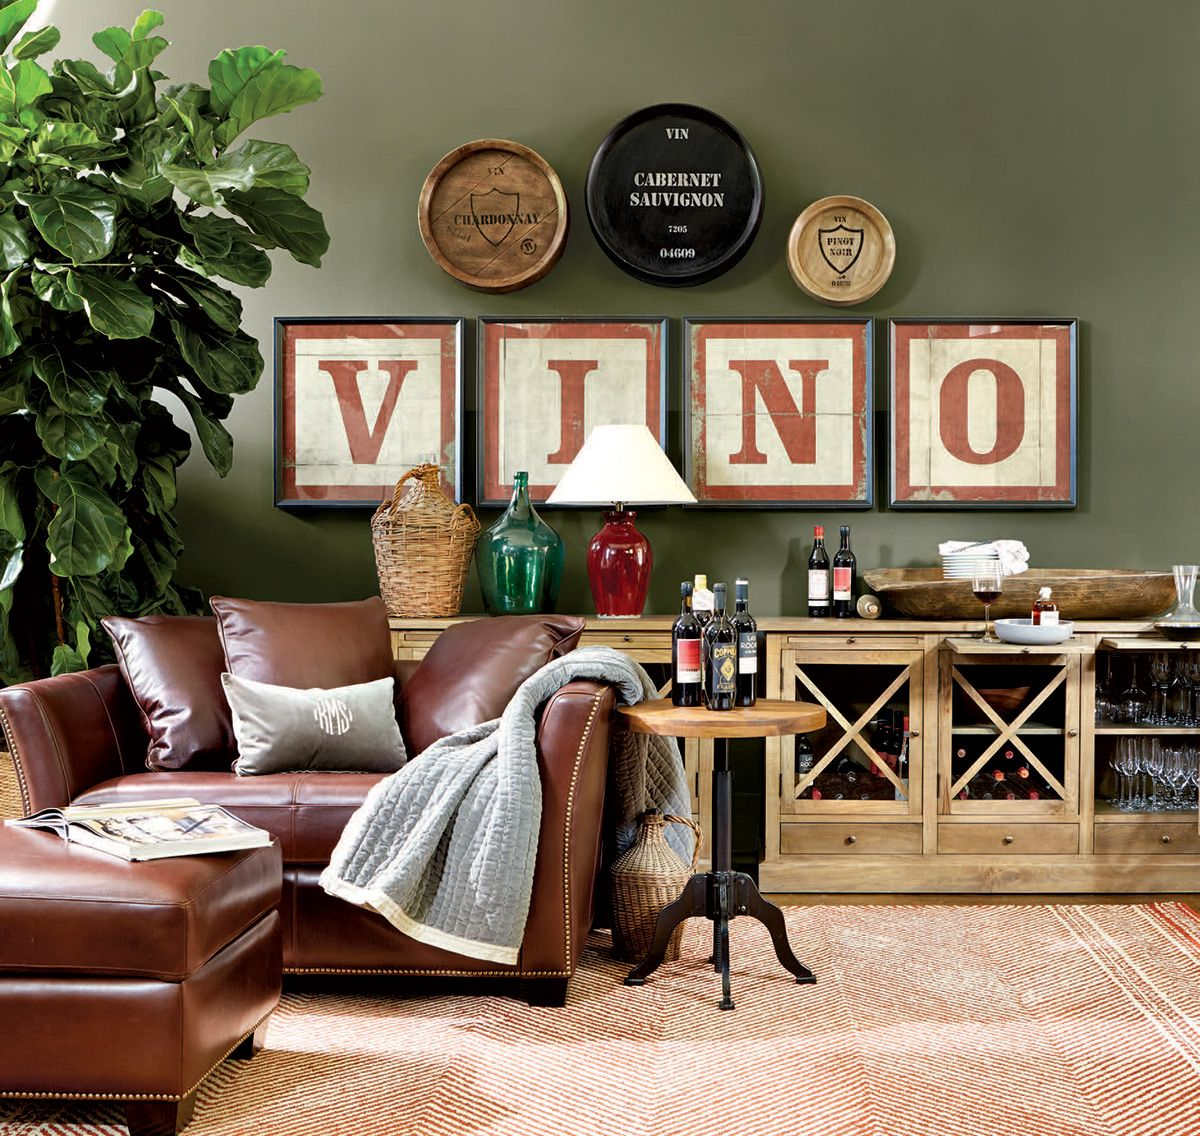 Wine Themed Home Decor: Living Rooms Ideas For Decorating